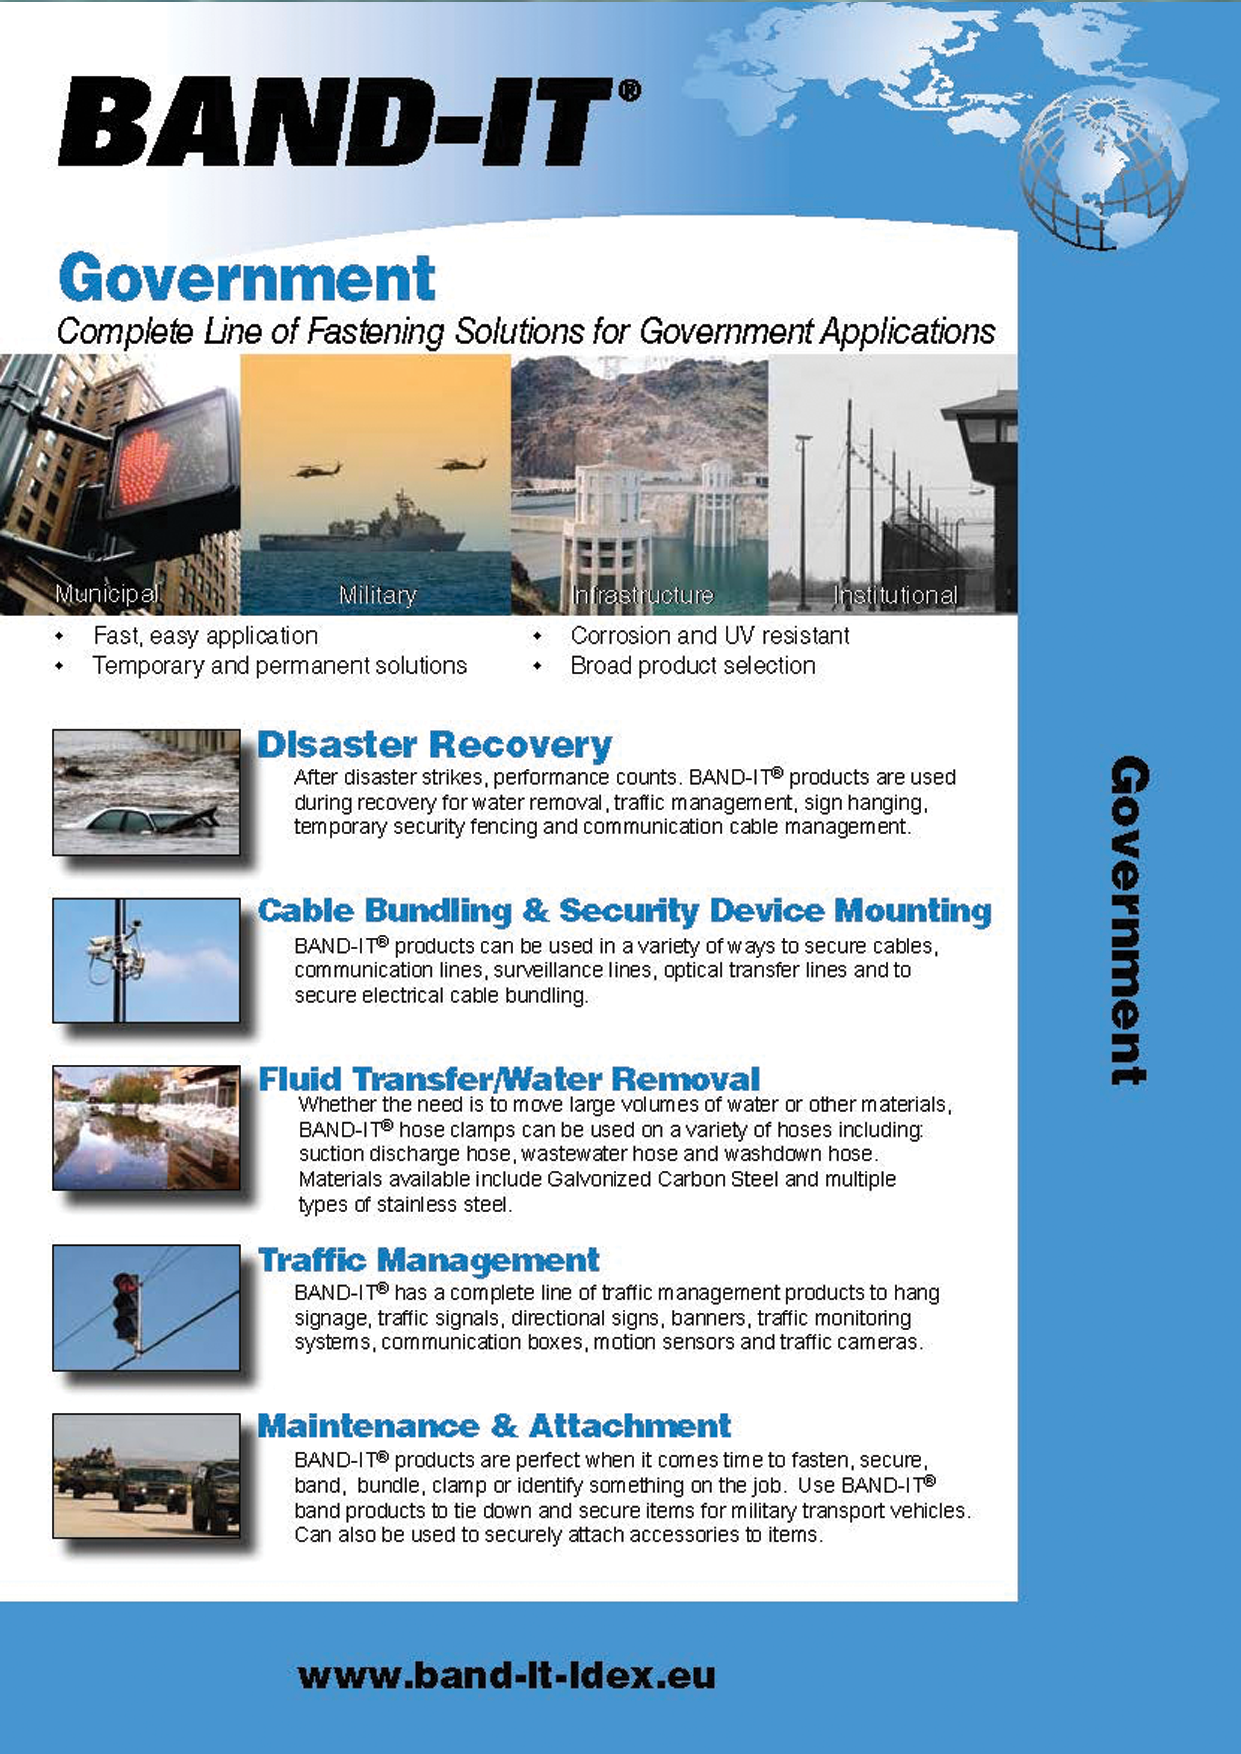 Government Products - Complete Line of Fastening Solutions for Facility Maintenance Applications